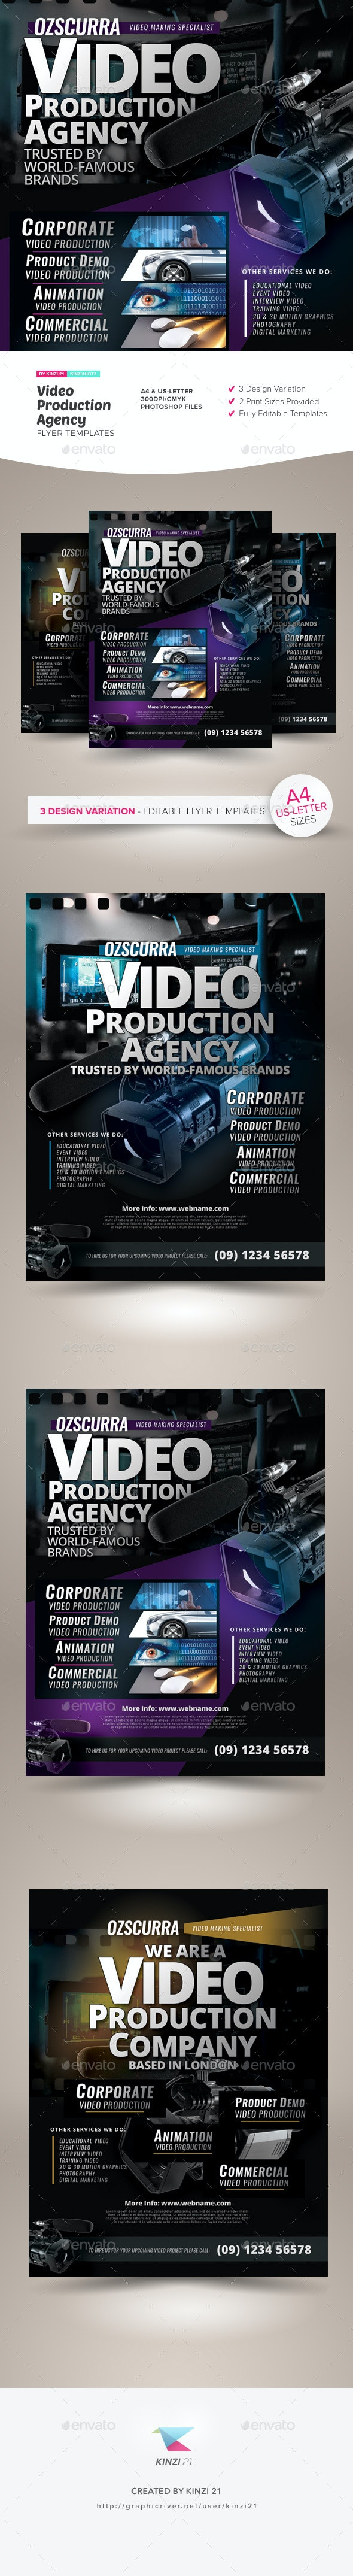 Video Production Agency Flyer Templates - Corporate Flyers